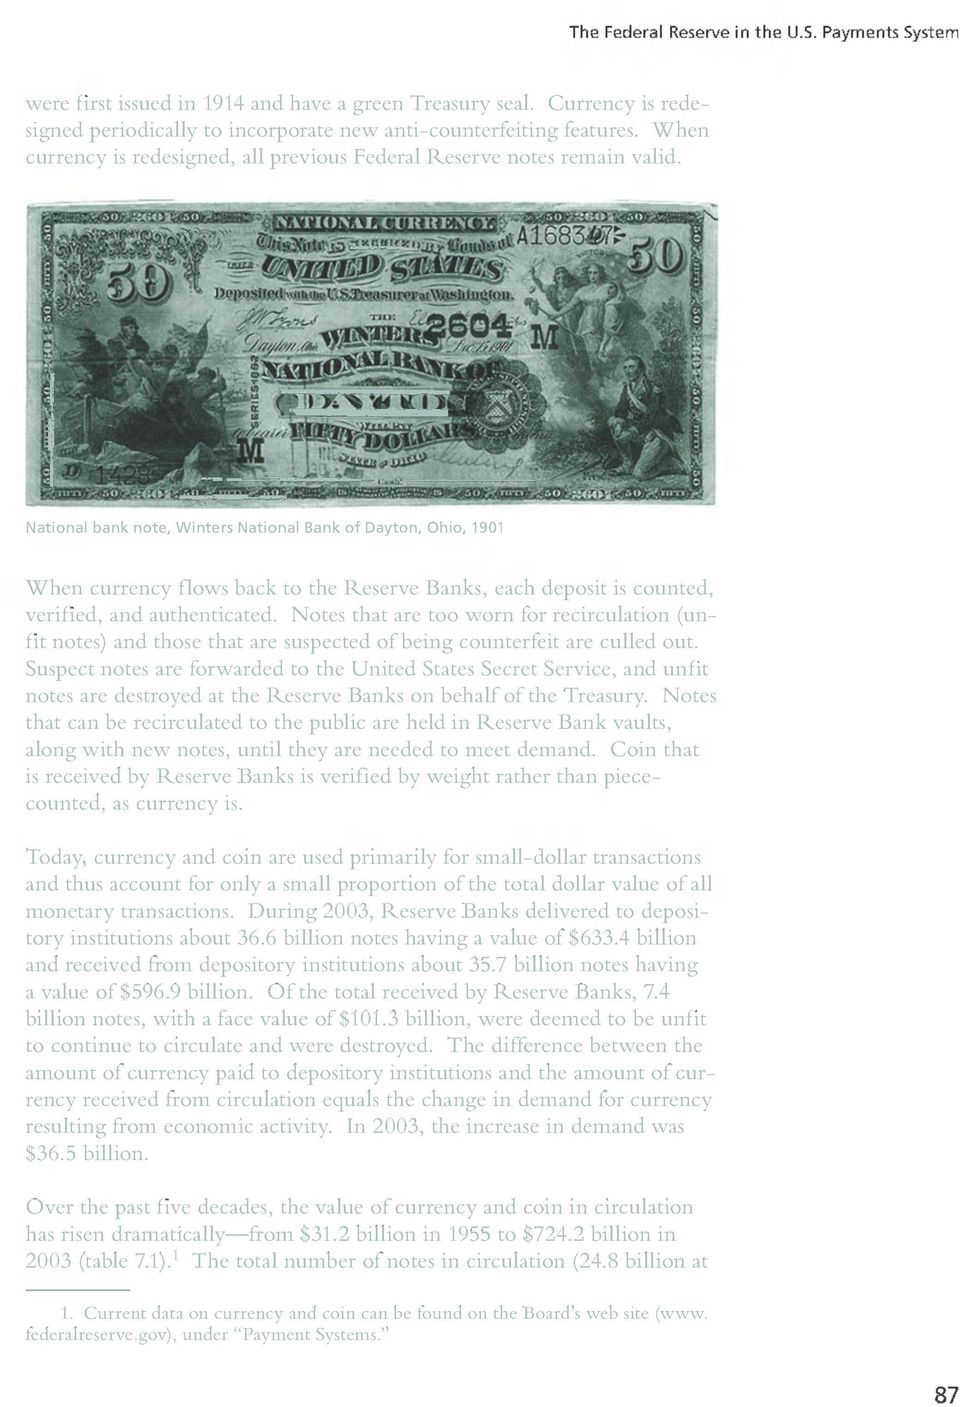 "Titleofimage: National bank note, Winters National Bank of Dayton, Ohio, 1901"" When currency flows back to the Reserve Banks, each deposit is counted, verified, and authenticated."